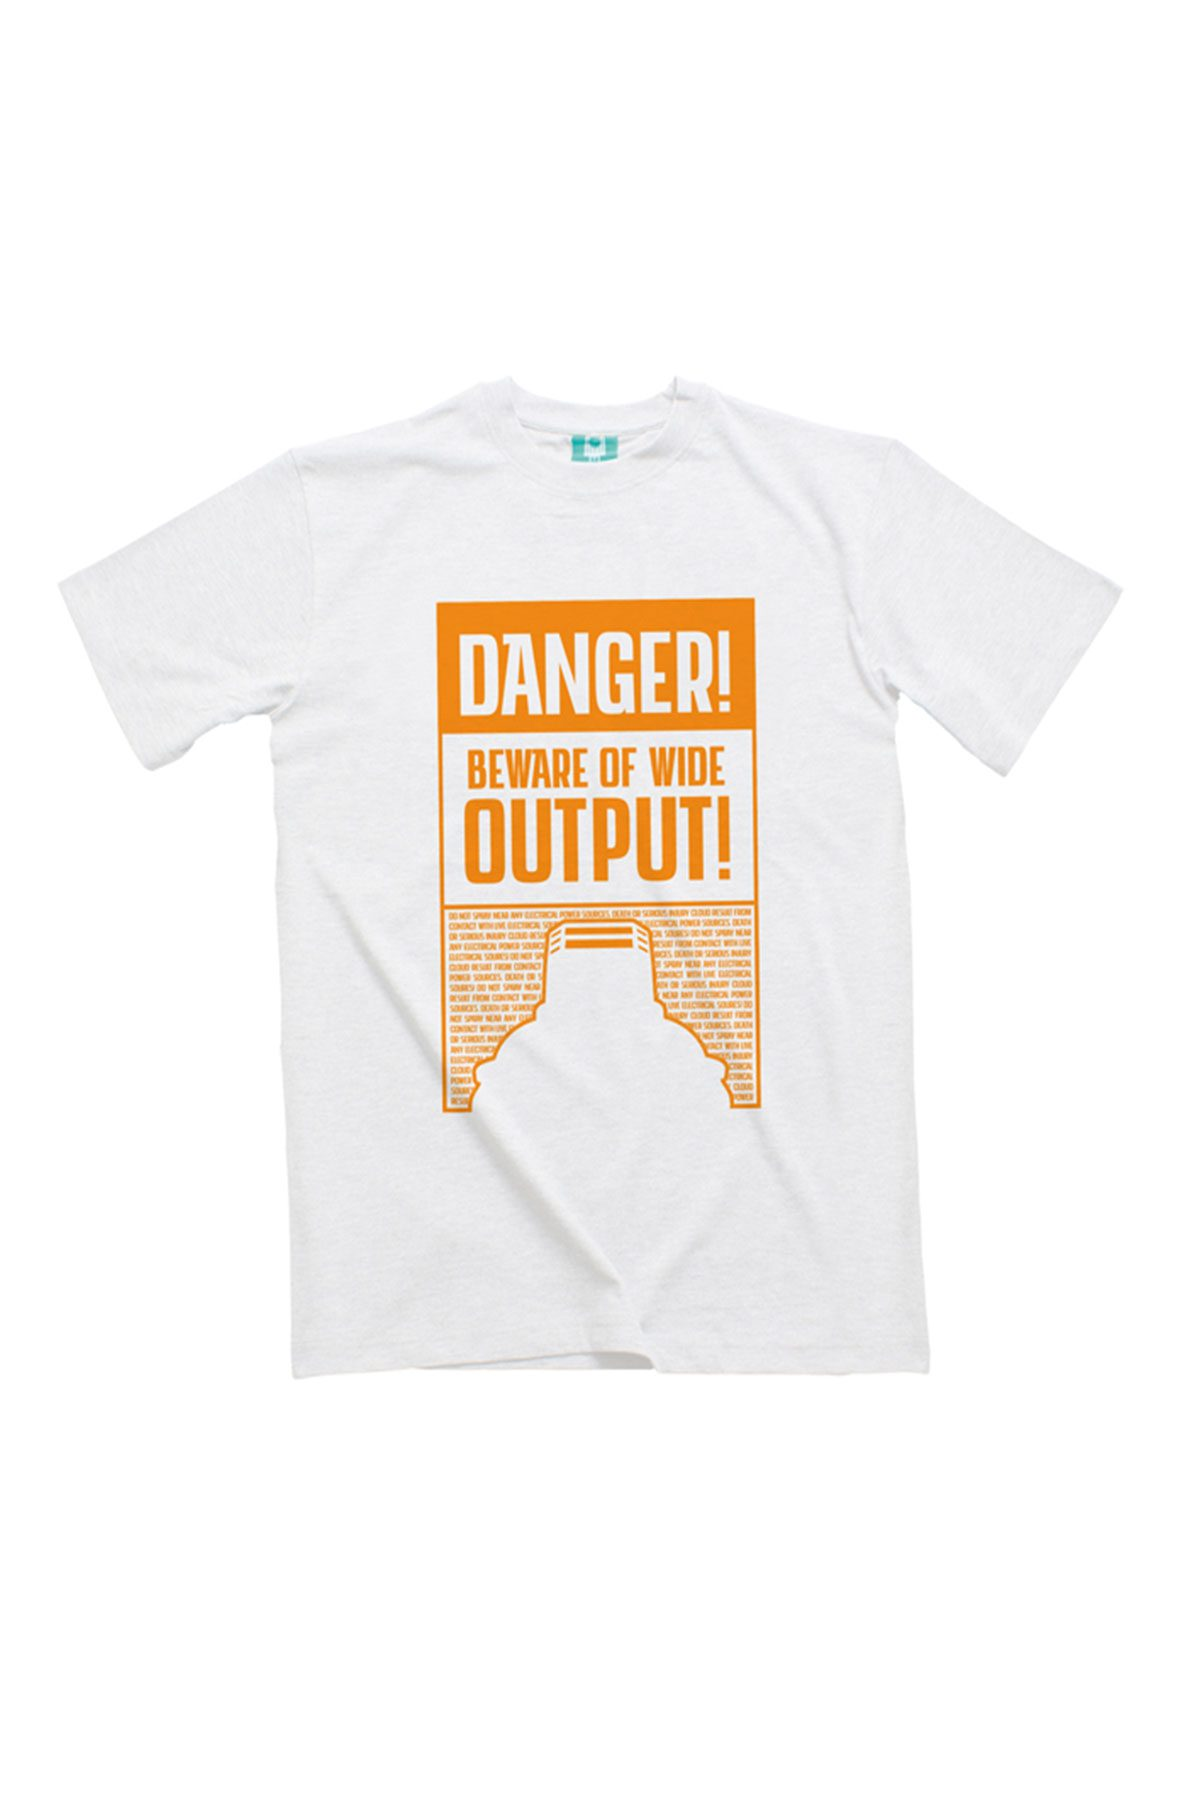 Montana DANGER ULTRA-WIDE White T-Shirt